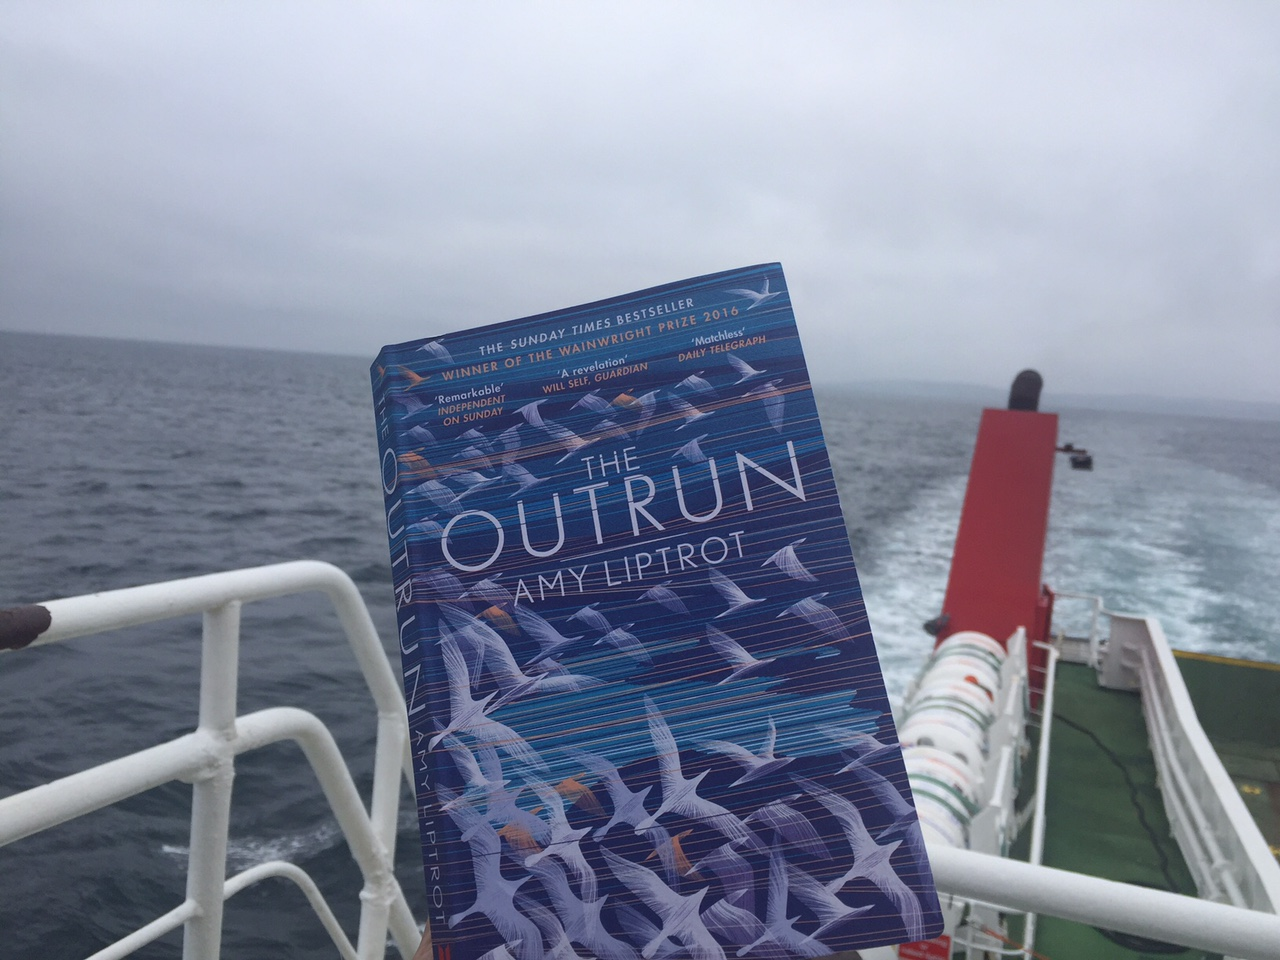 Reading The Outrun on the ro-ro ferry to the Northern isle of Westray